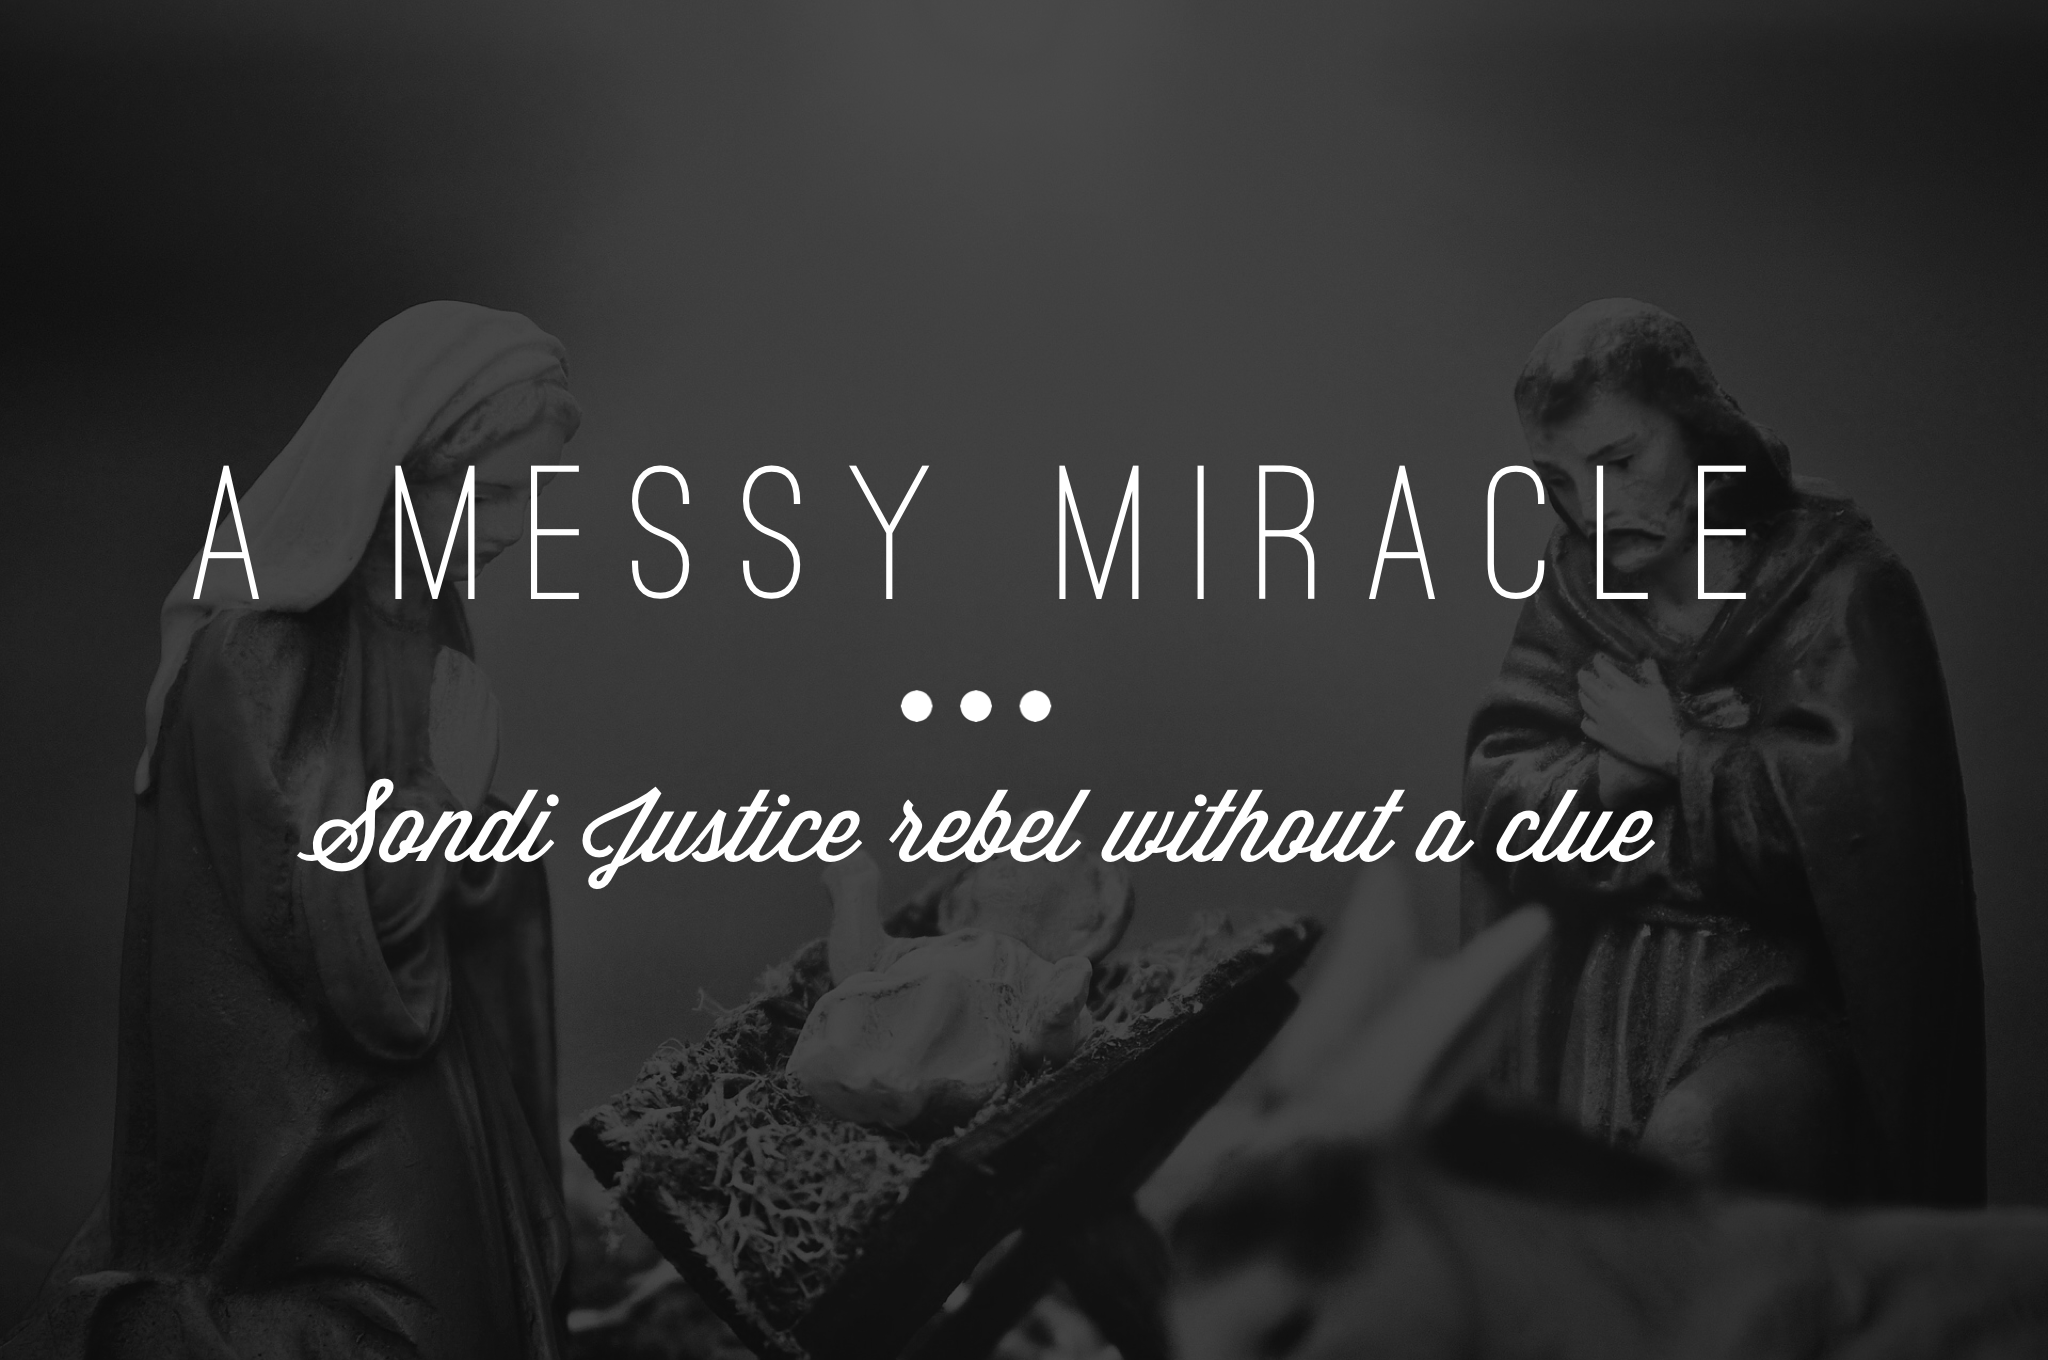 A Messy Miracle